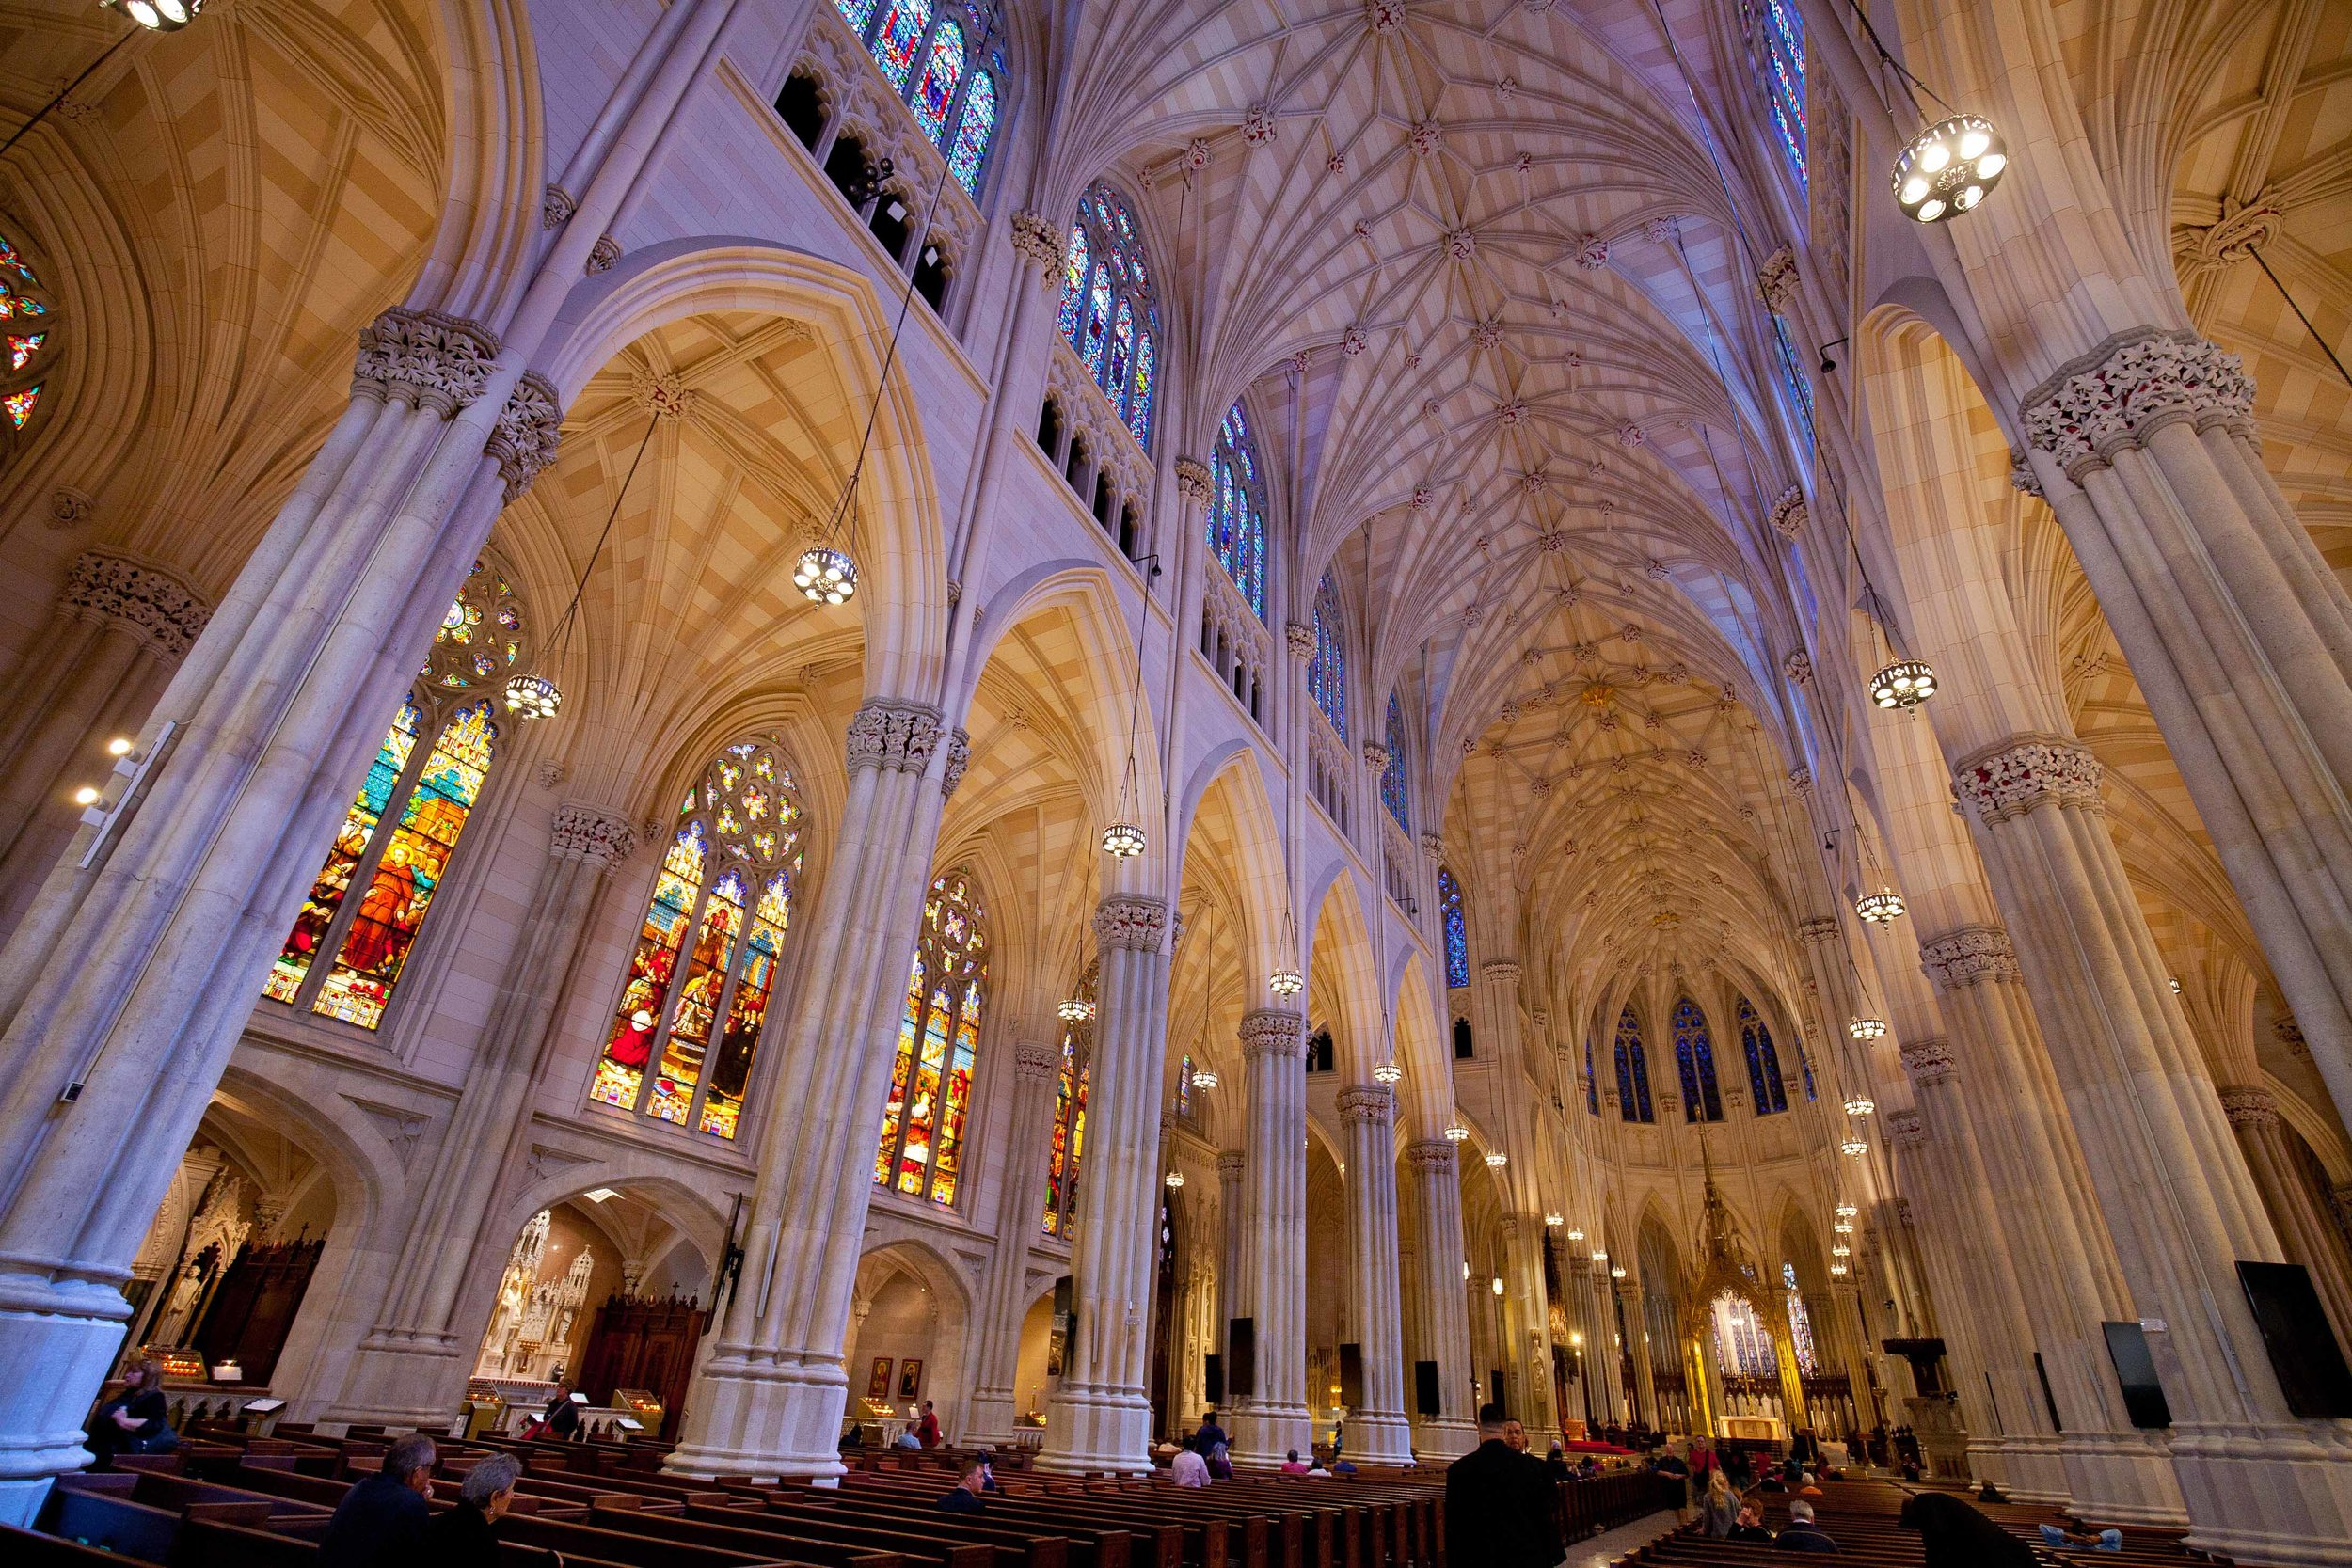 Interior of St. Patrick's Cathedral - New York City 2016